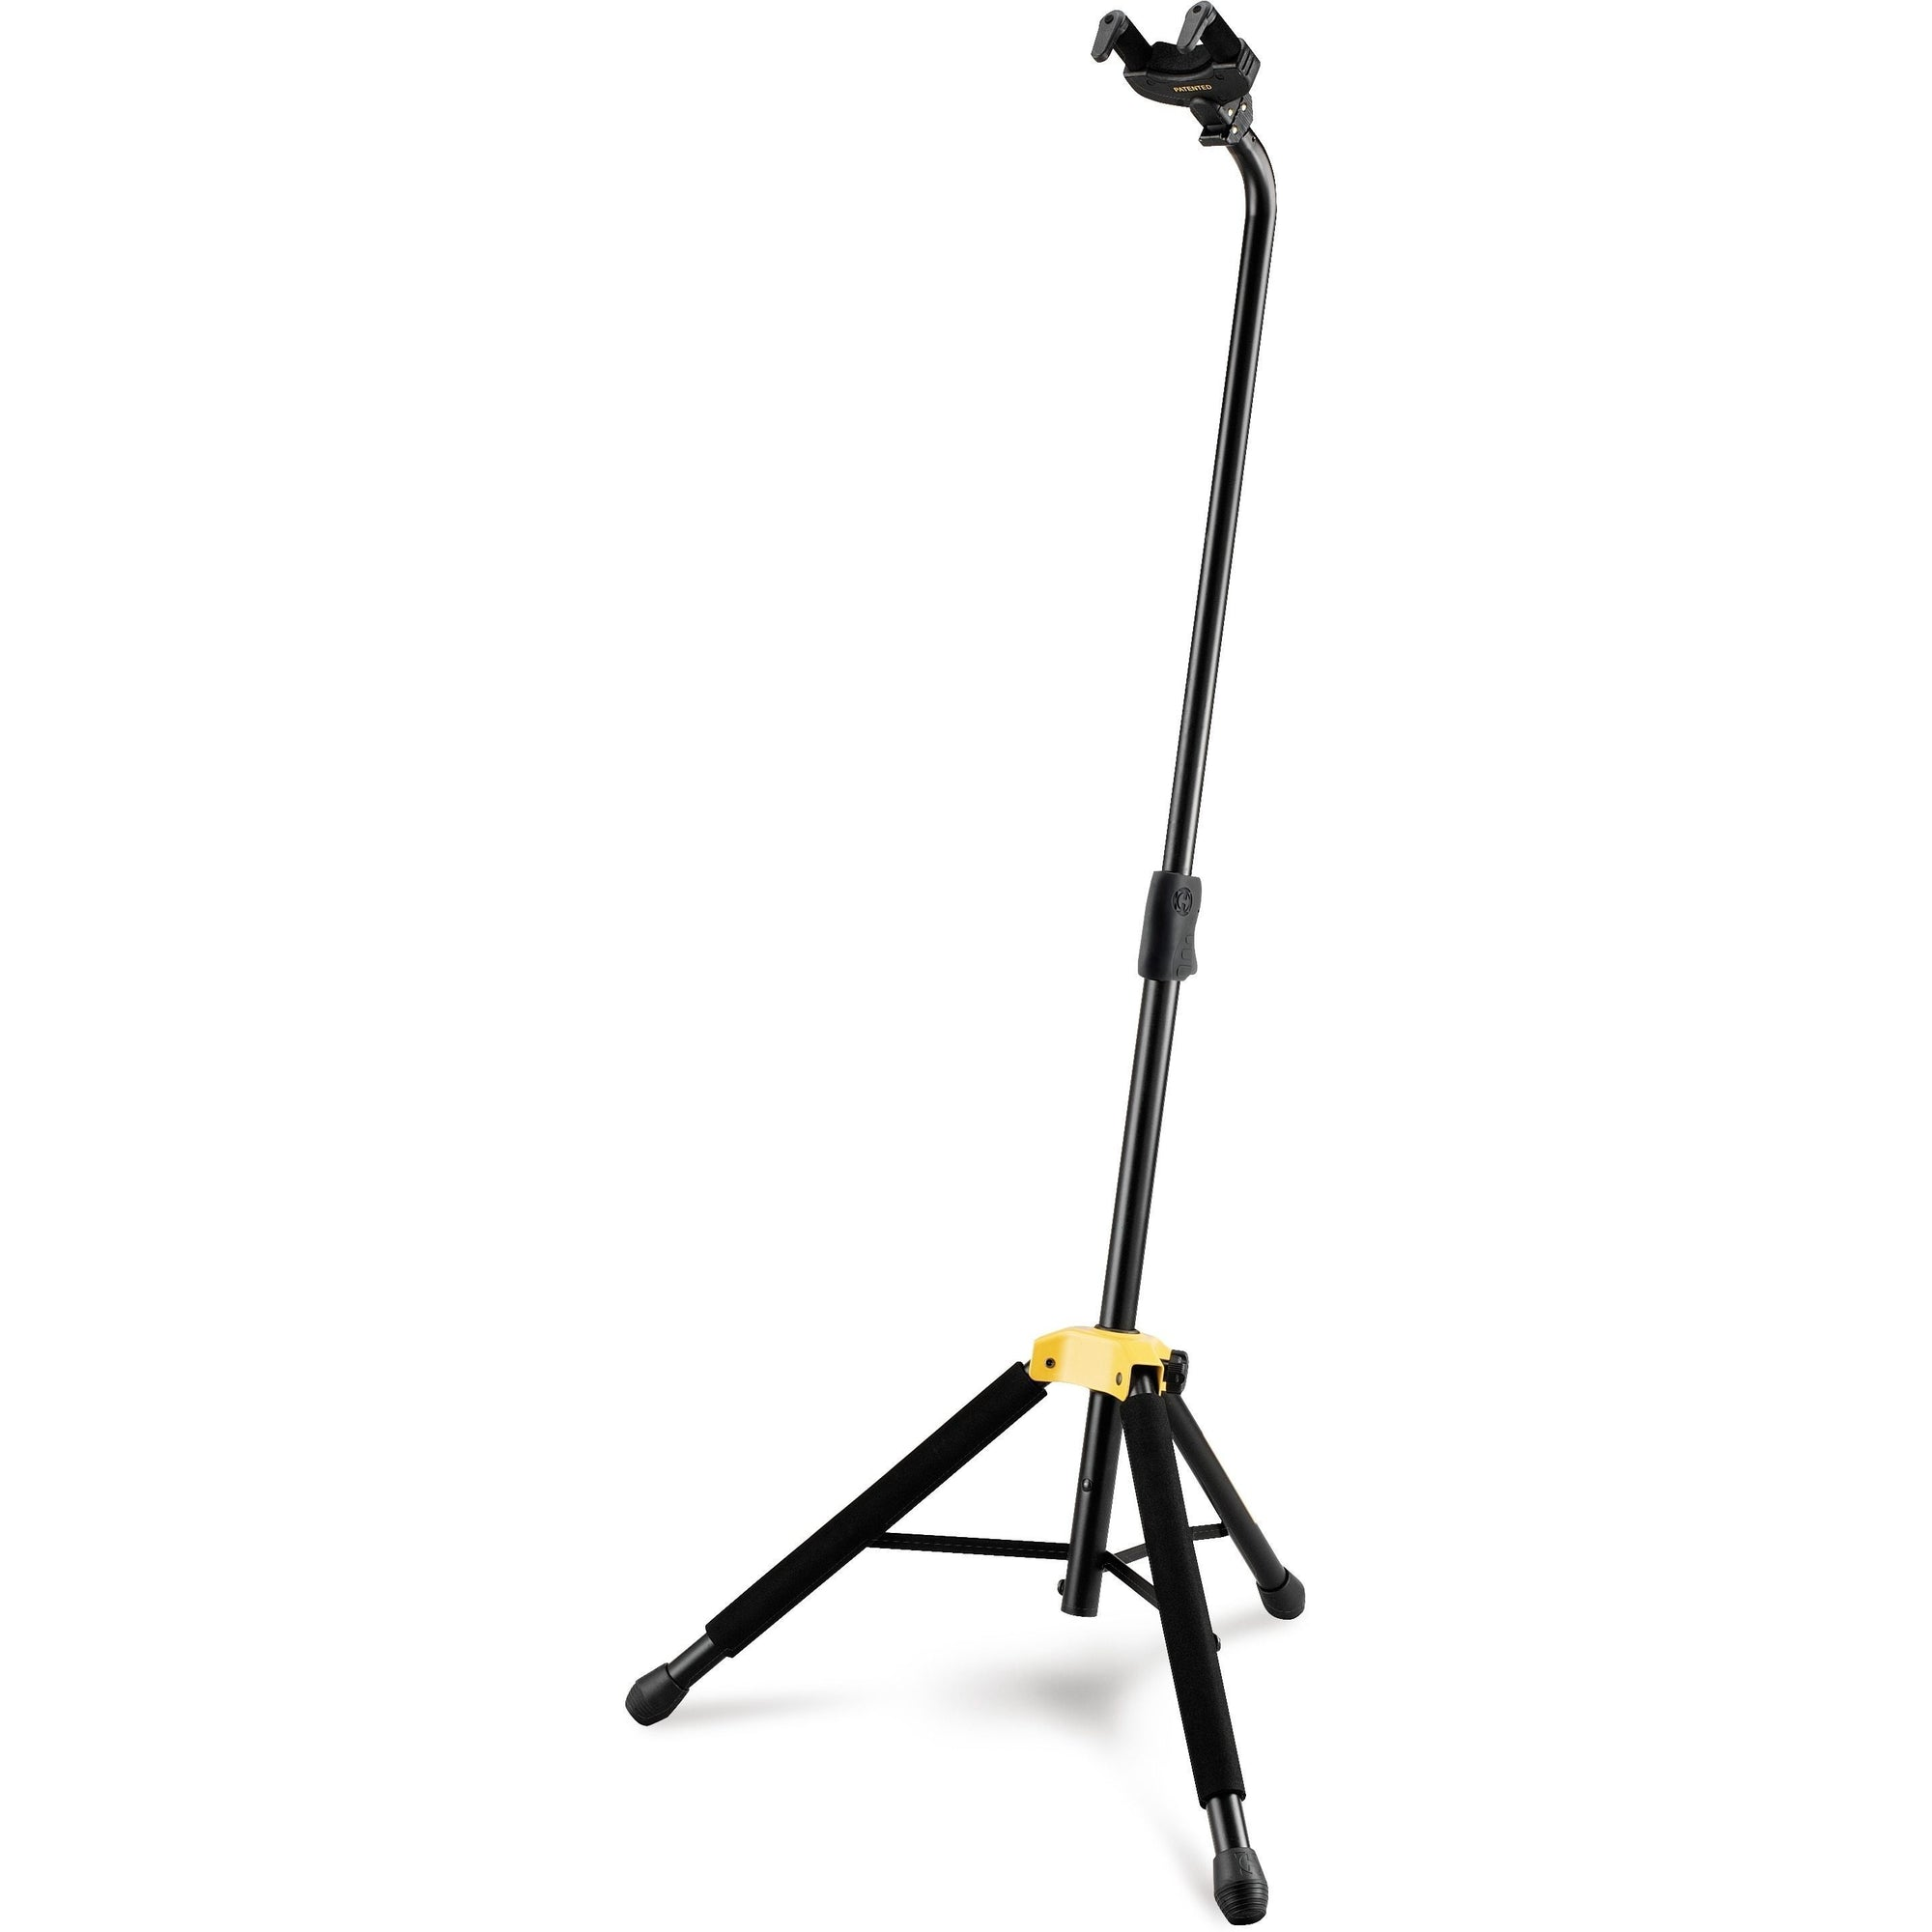 Hercules GS414B PLUS Auto Grip System Guitar Stand